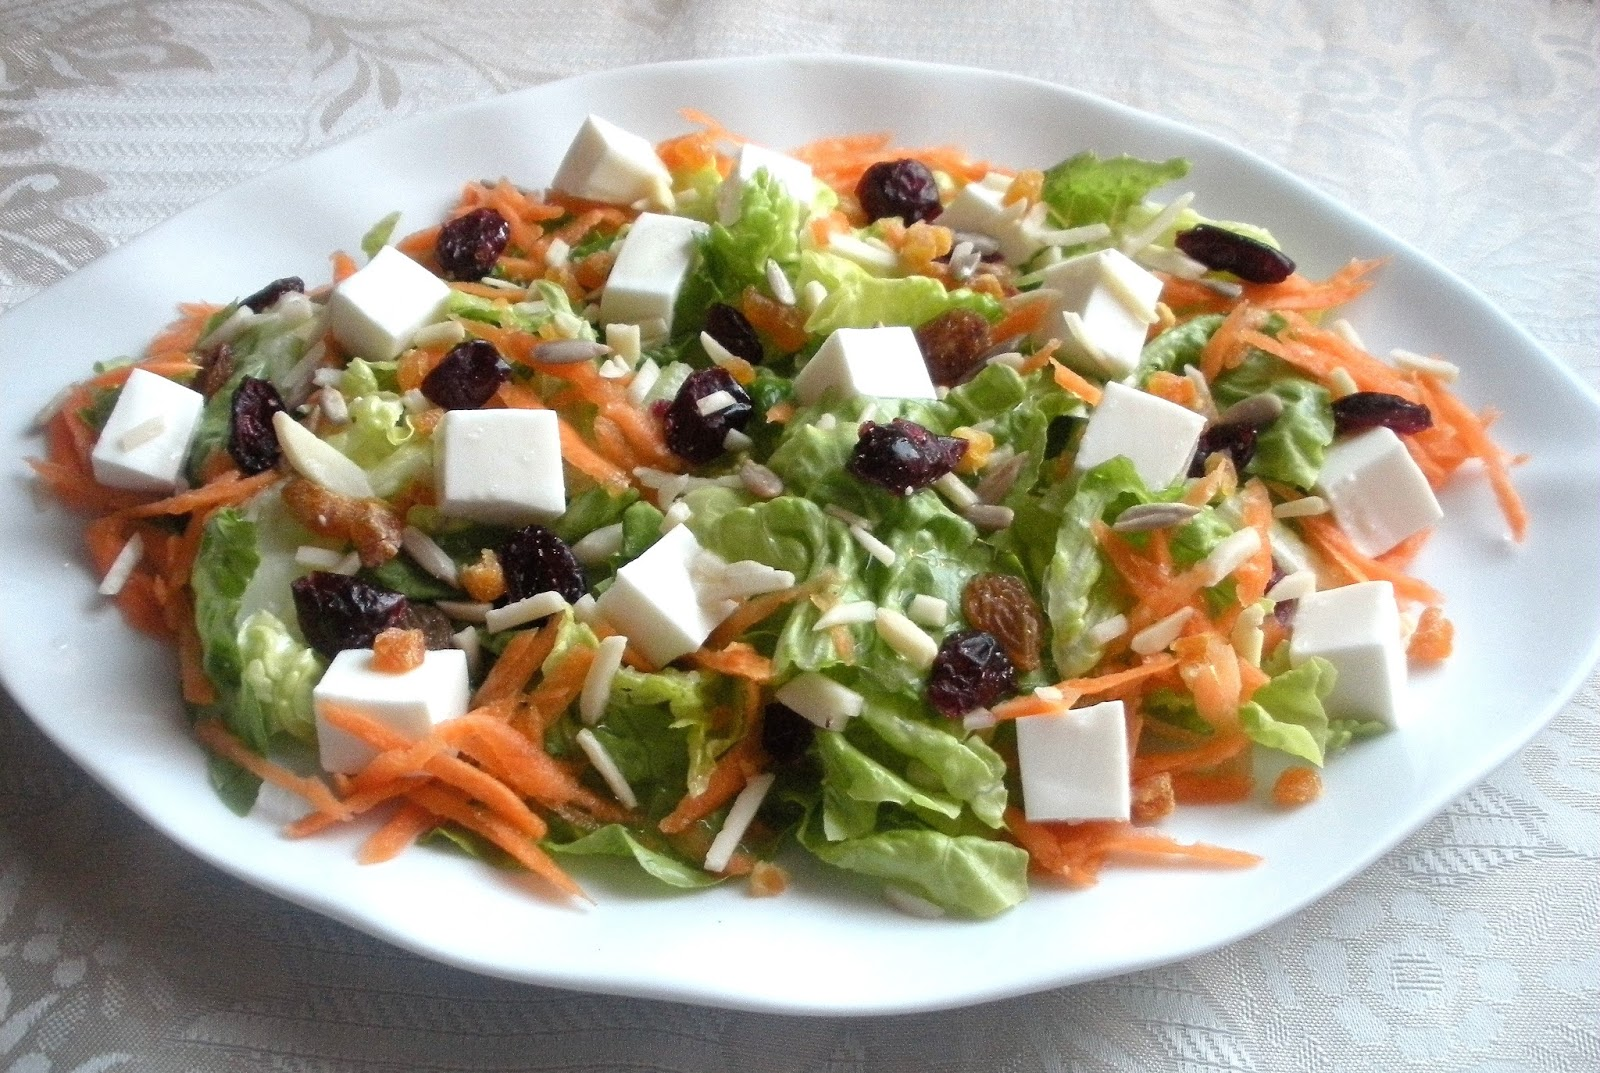 Aqui Se Cocina Ensalada De Lechuga Zanahoria Y Queso Fresco Con Frutos Secos Learn how to use the spanish sentence mi ensalada tiene lechuga y zanahoria. (my salad has lettuce and carrot.) by discussing it with the duolingo i listened in both normal and slow speed and did not hear the 2nd a pronounced in zanahoria. ensalada de lechuga zanahoria y queso